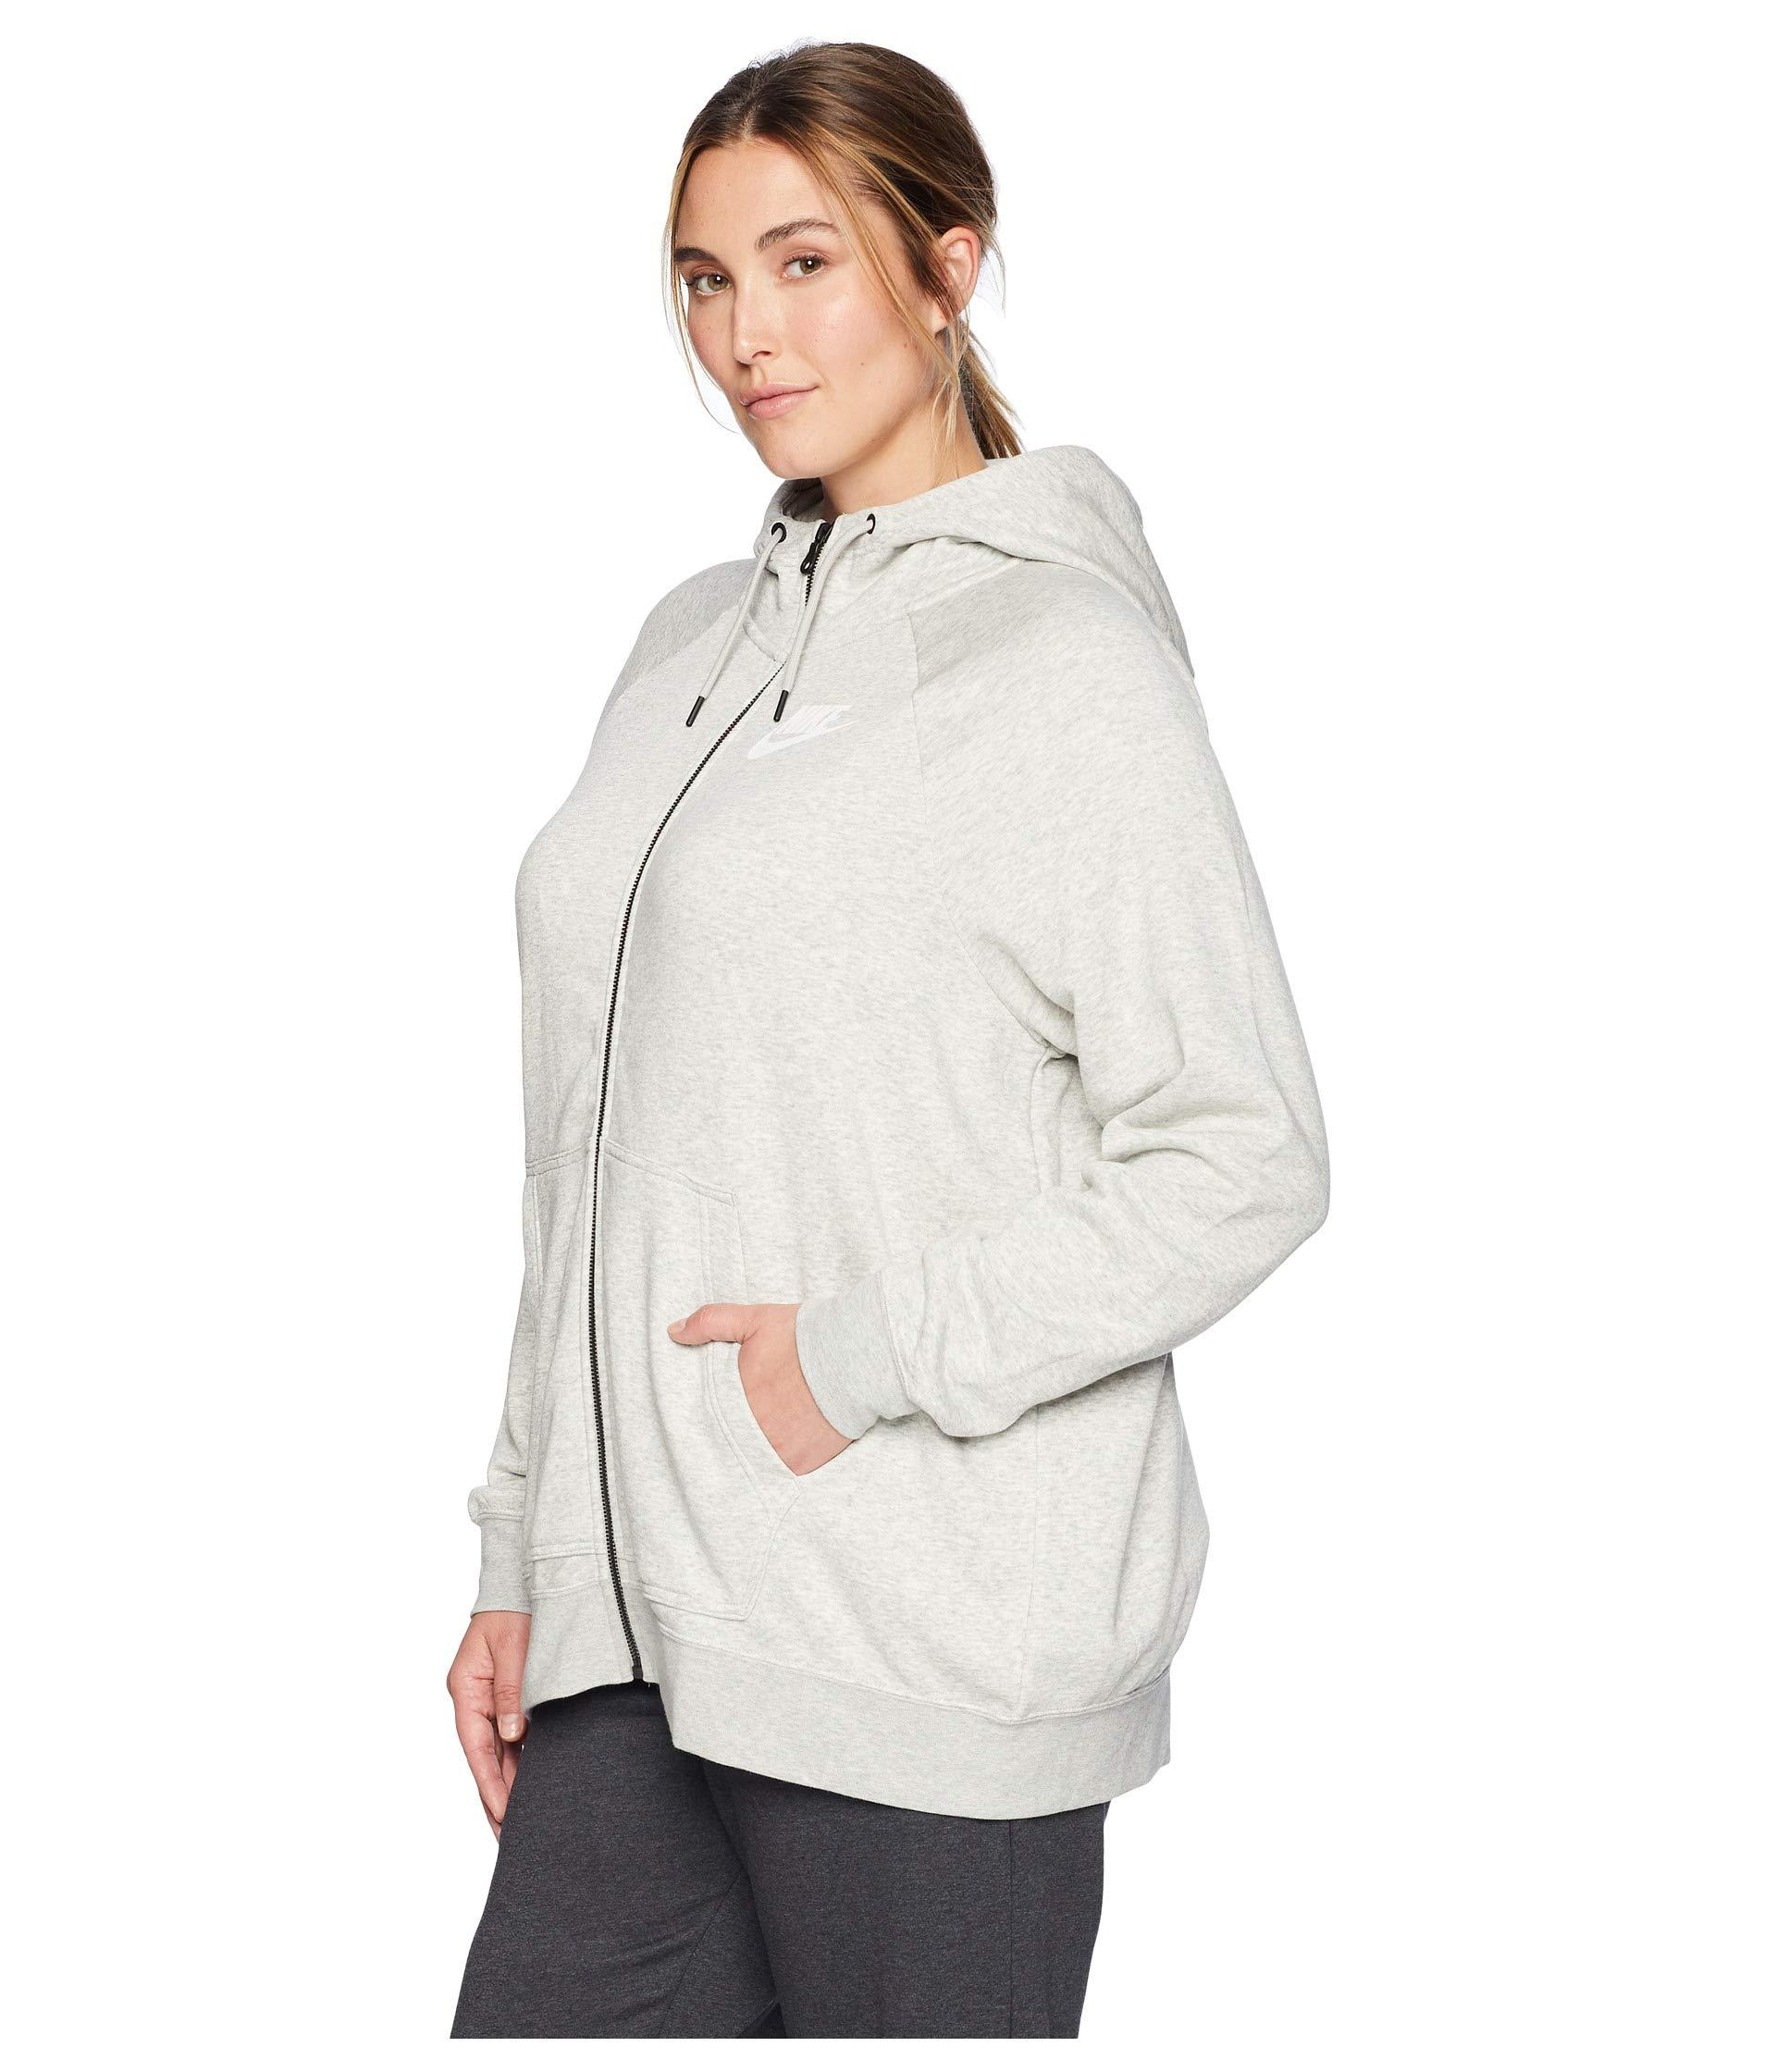 f22edece3ac83 Lyst - Nike Plus Size Rally Full Zip Extended Hoodie in Gray - Save 19%